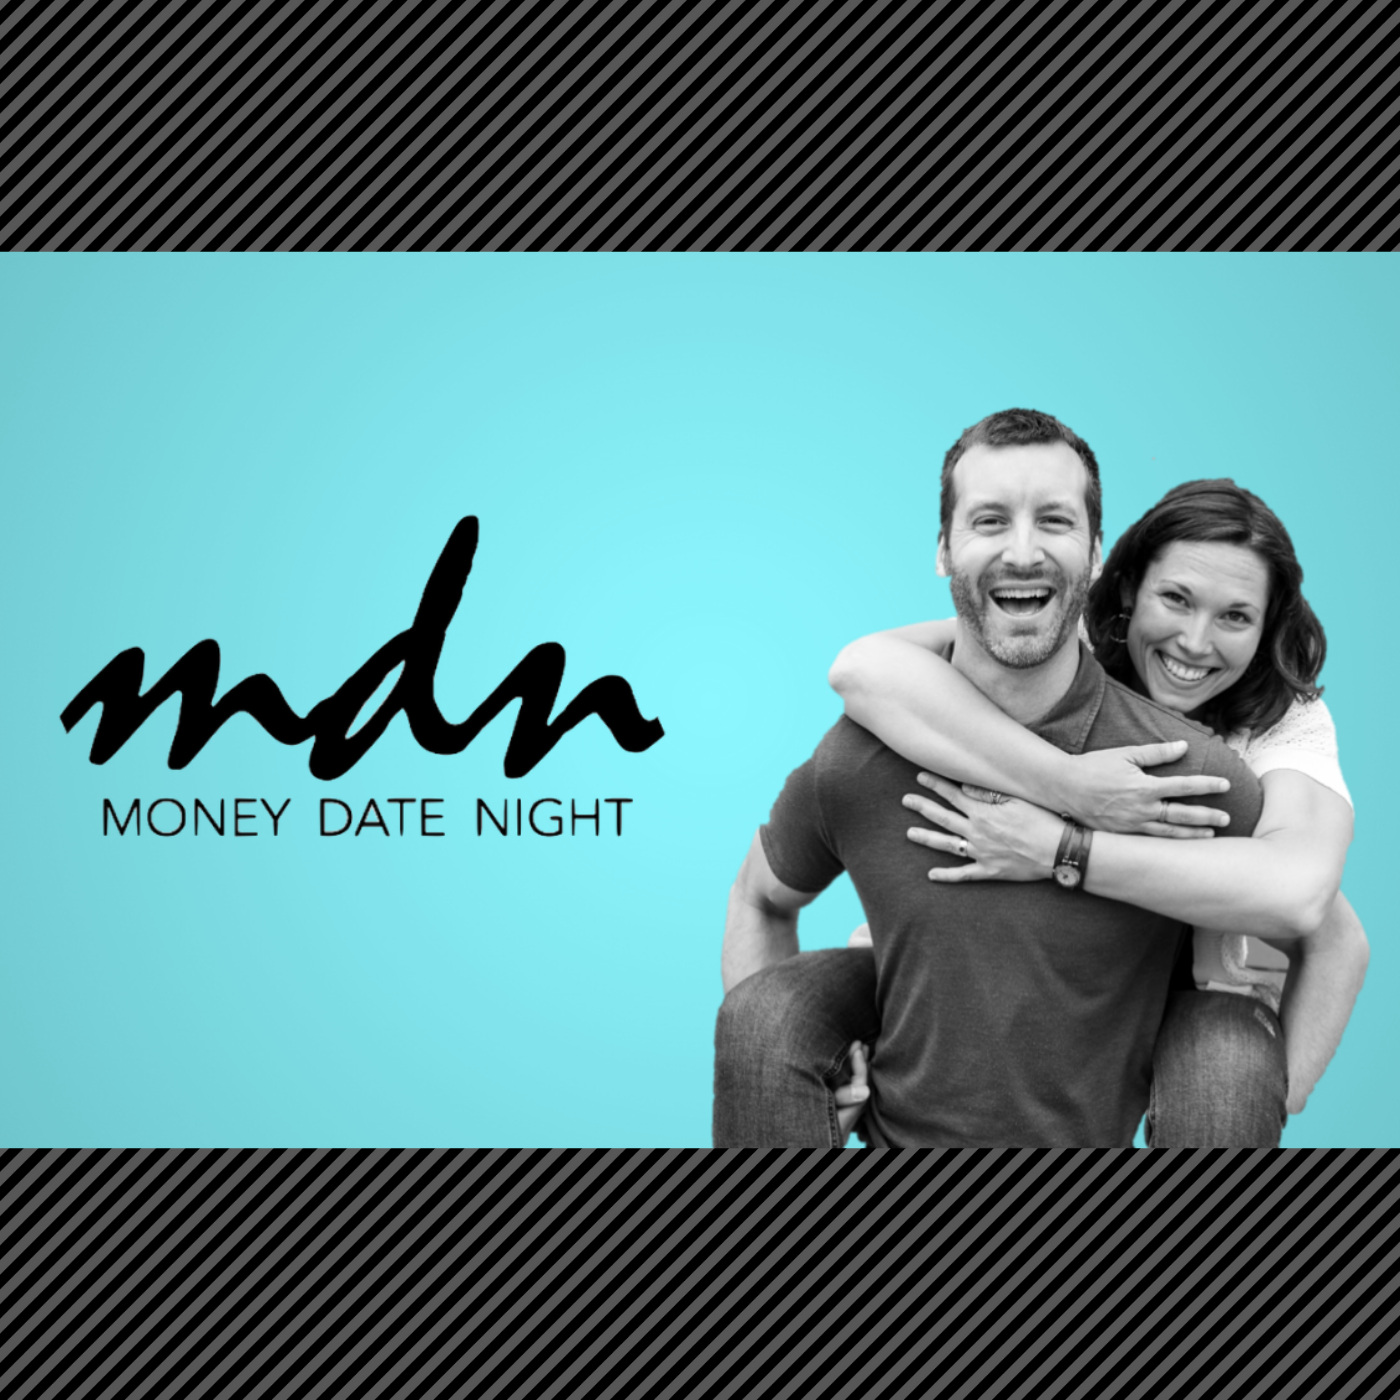 MONEY DATE NIGHT show art